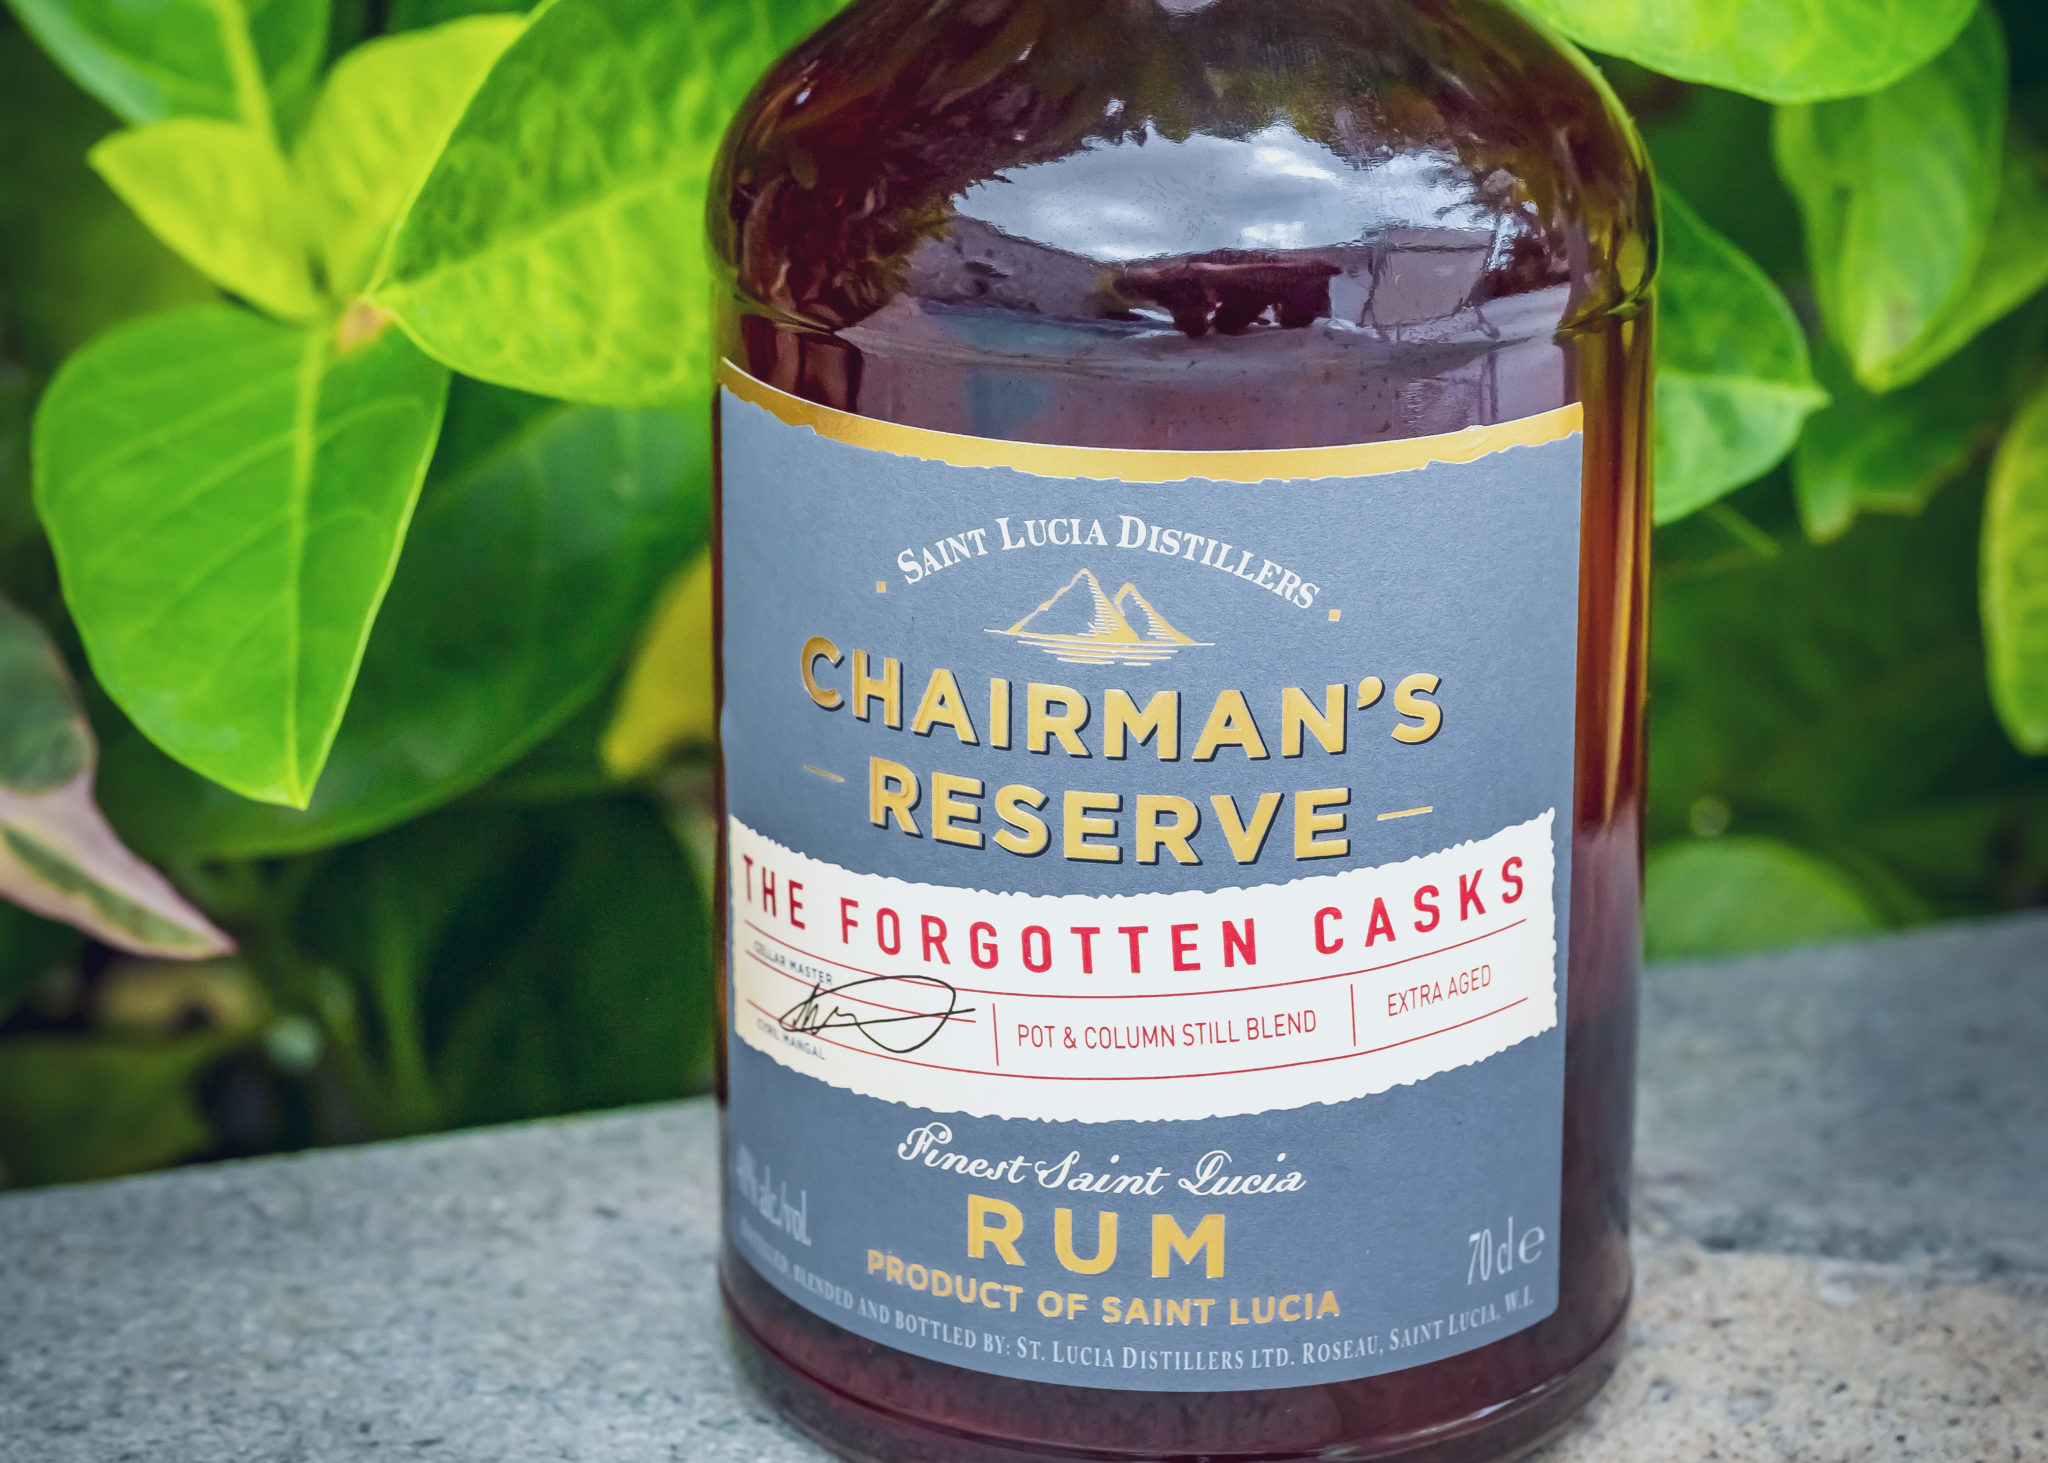 Chairman's Reserve The Forgotten Casks: Lost and Found